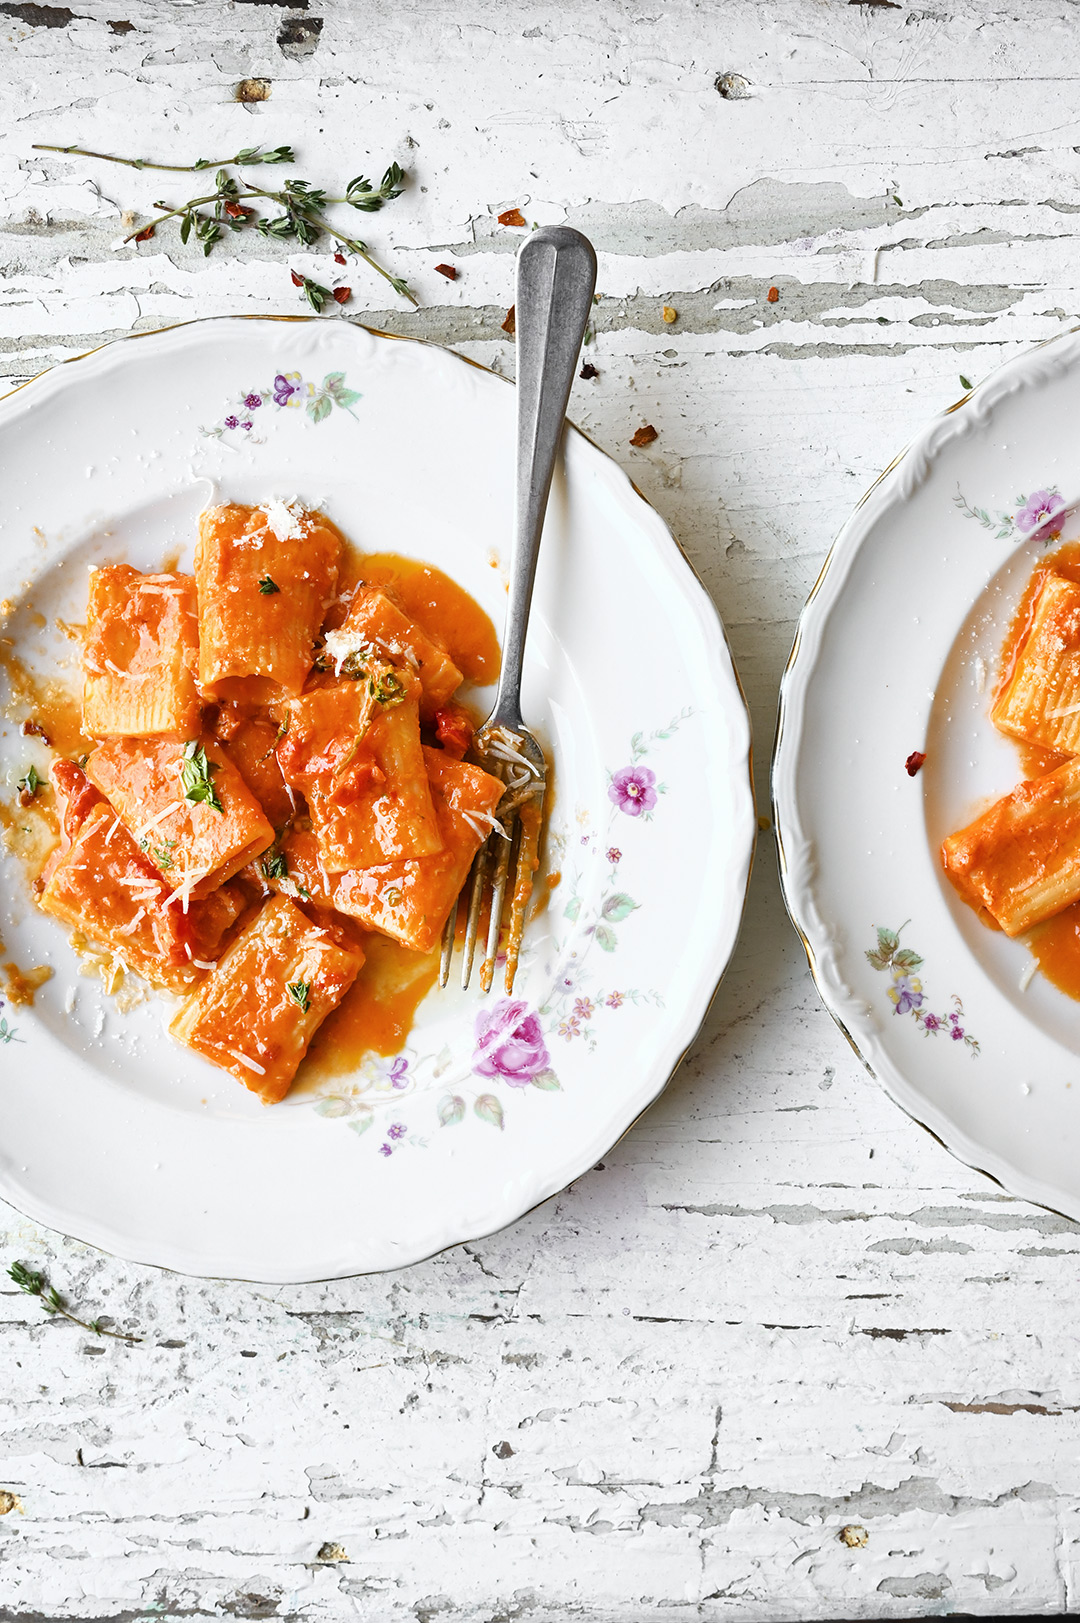 serving dumplings | Spicy rigatoni alla vodka with sun dried tomatoes